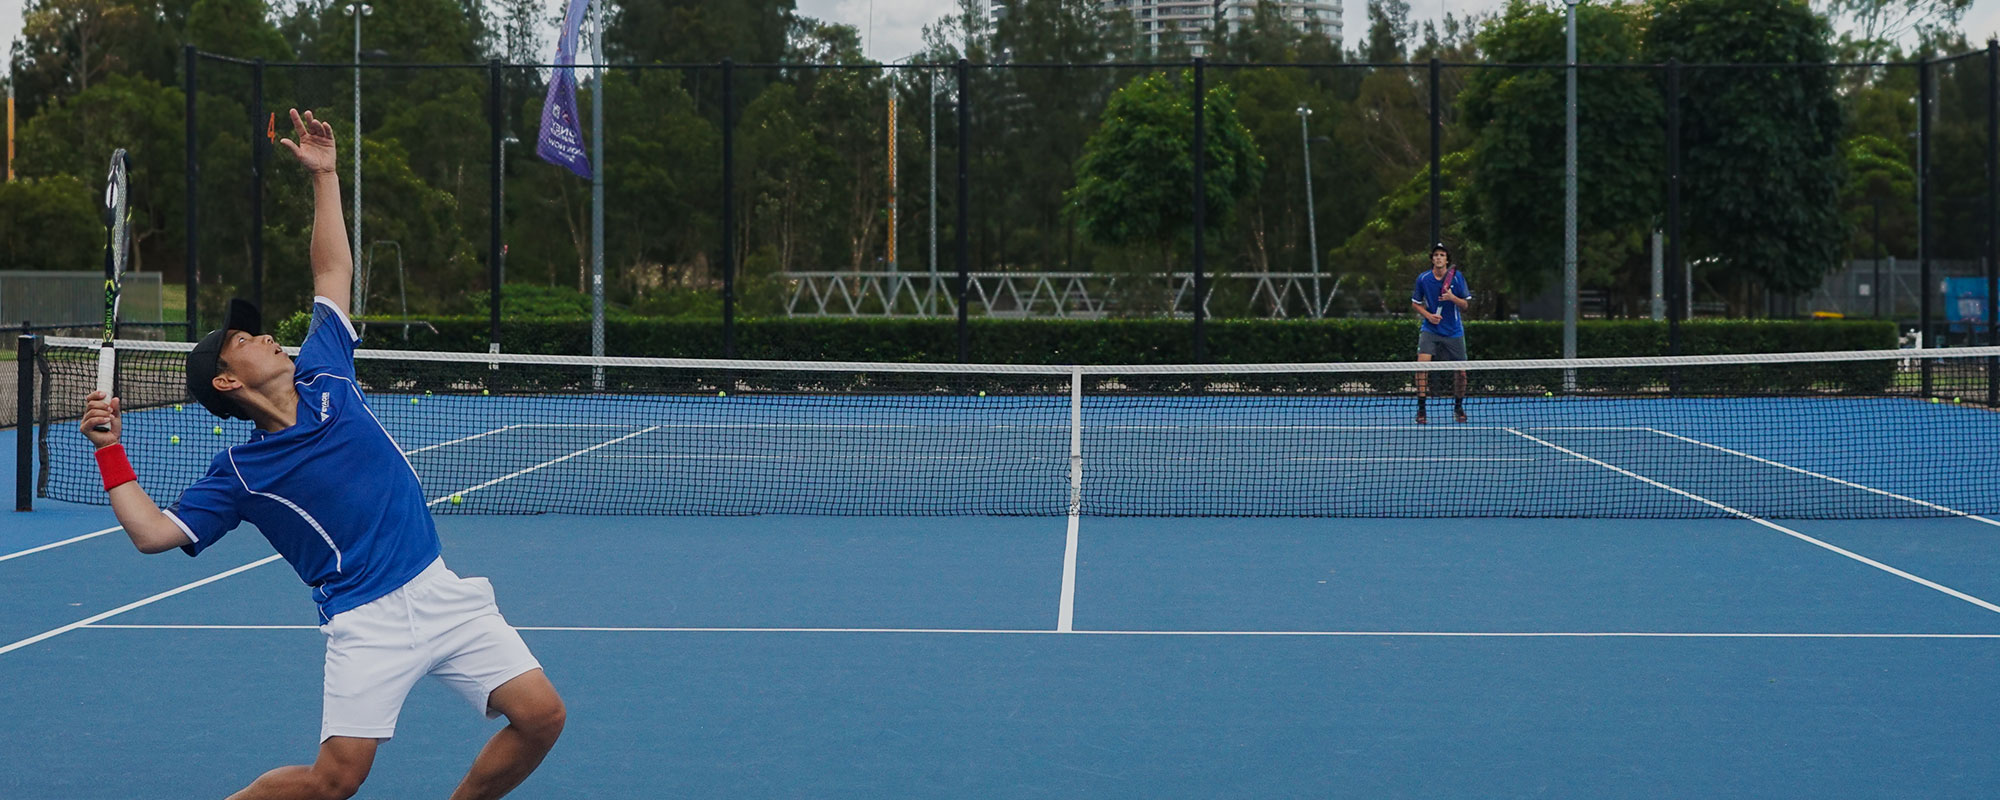 Tennis Match at Voyager Tennis Academy